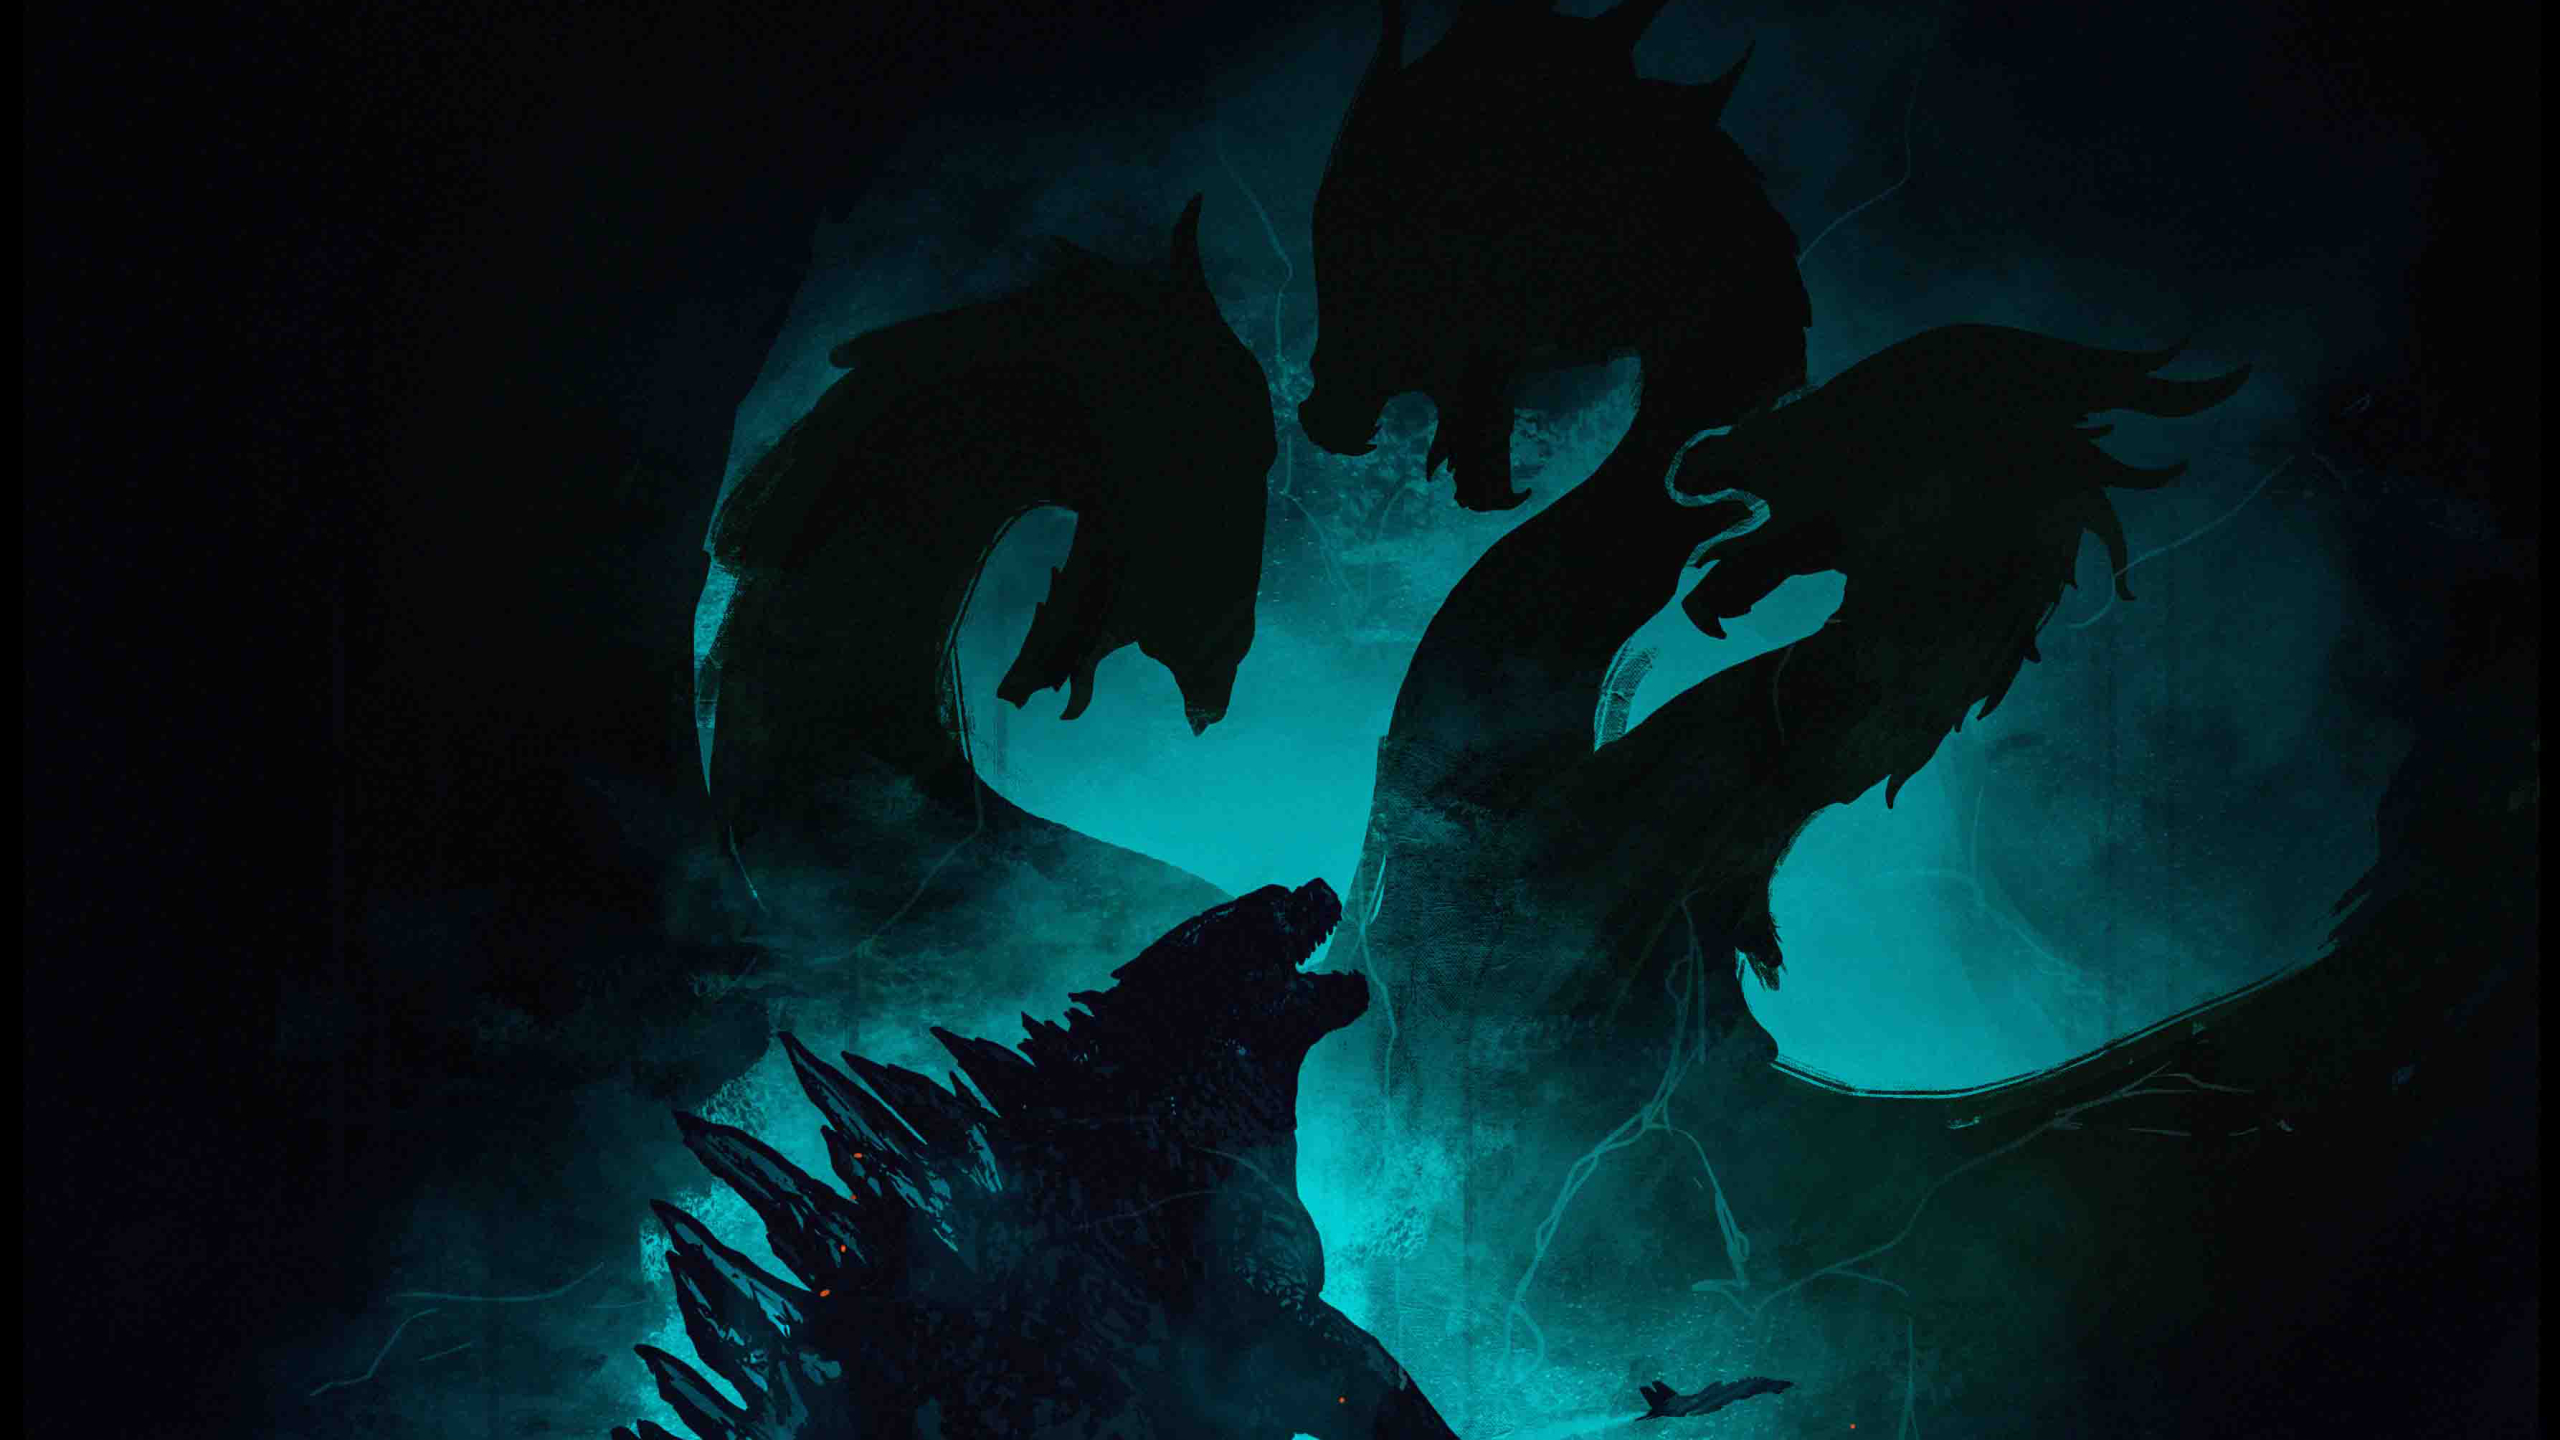 2560x1440 4k Poster Of Godzilla King Of The Monsters 1440p